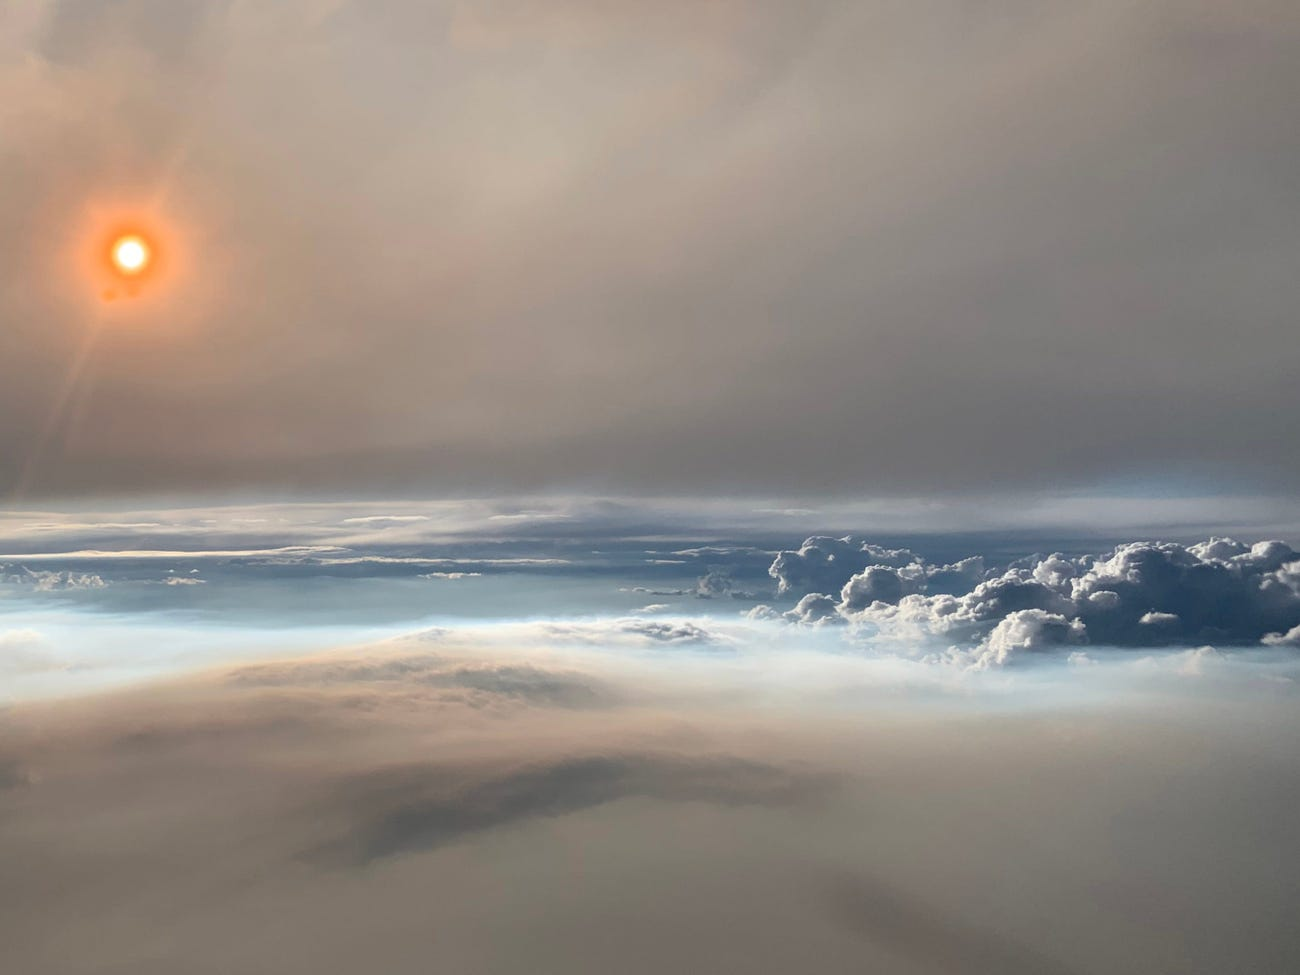 Record temperatures in Canada create dangerous clouds of fire